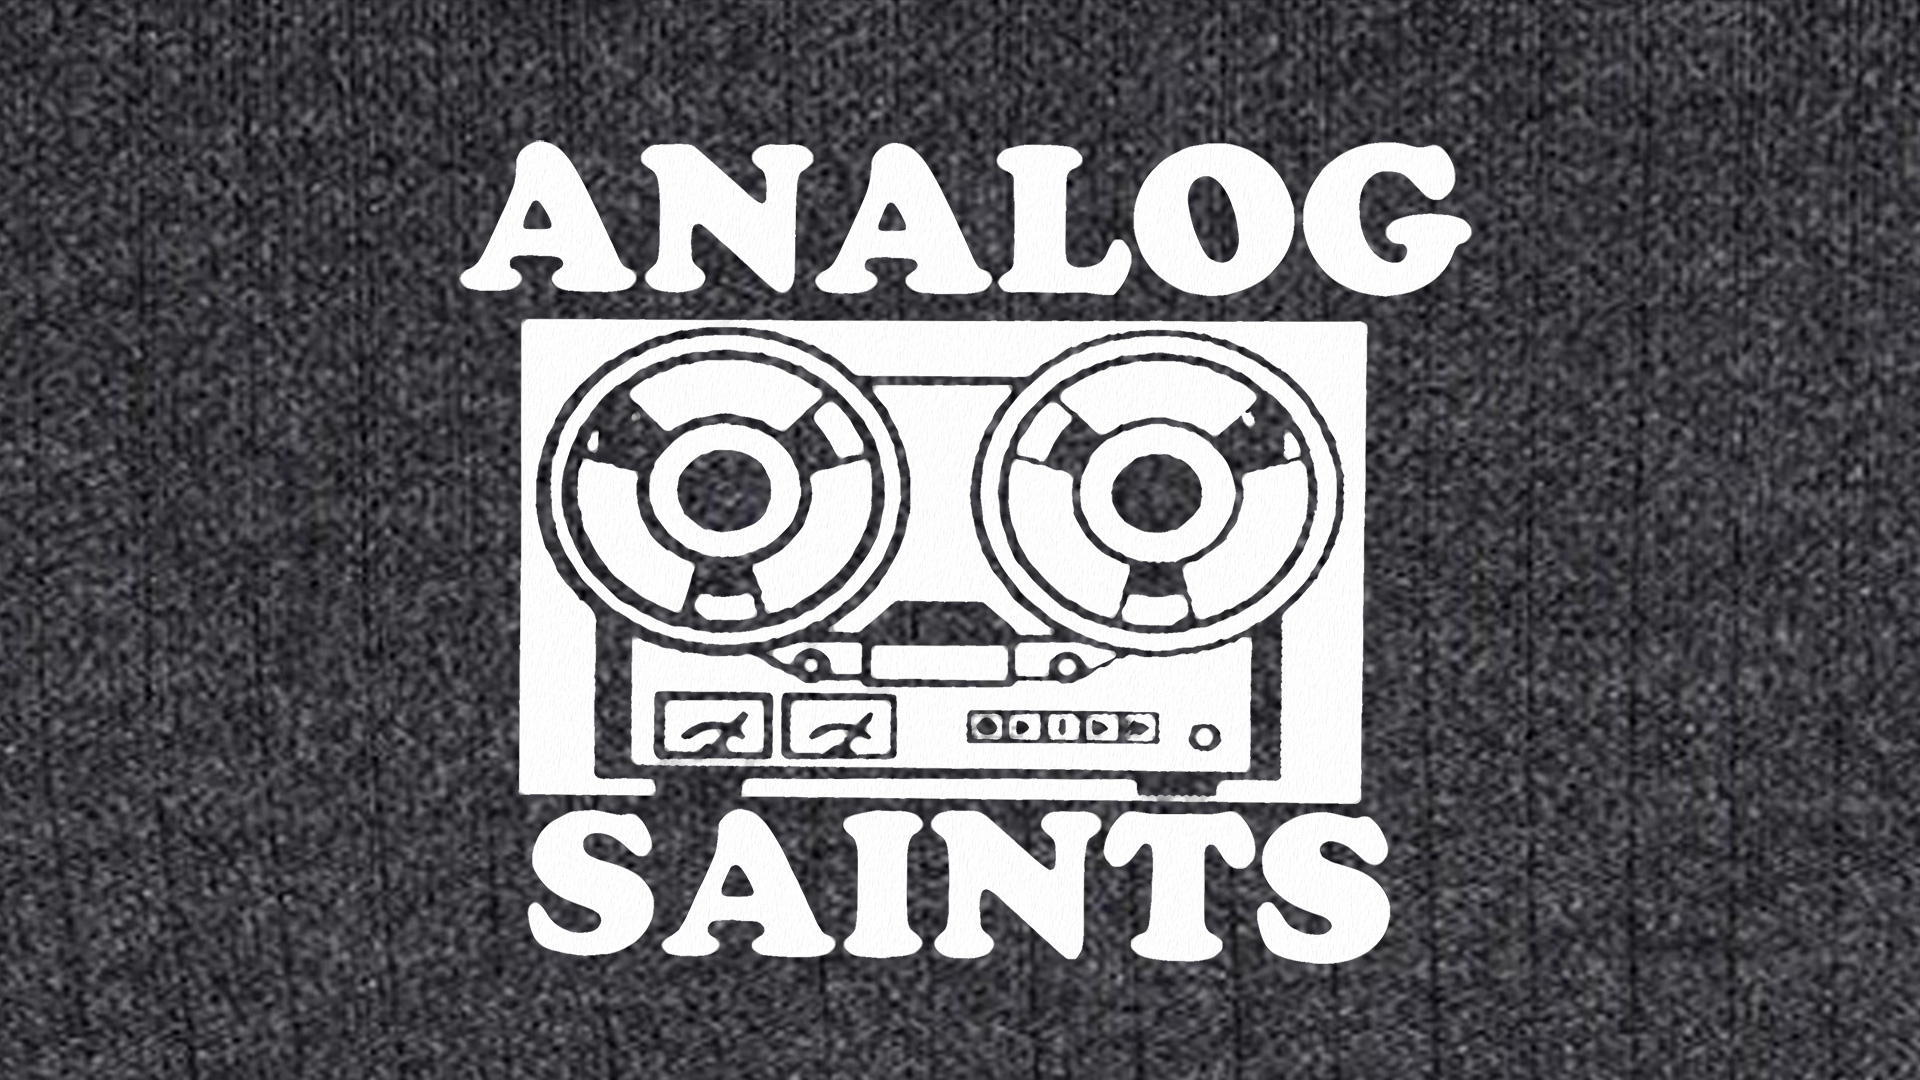 Analog Saints logo featuring a reel-to-reel tape player